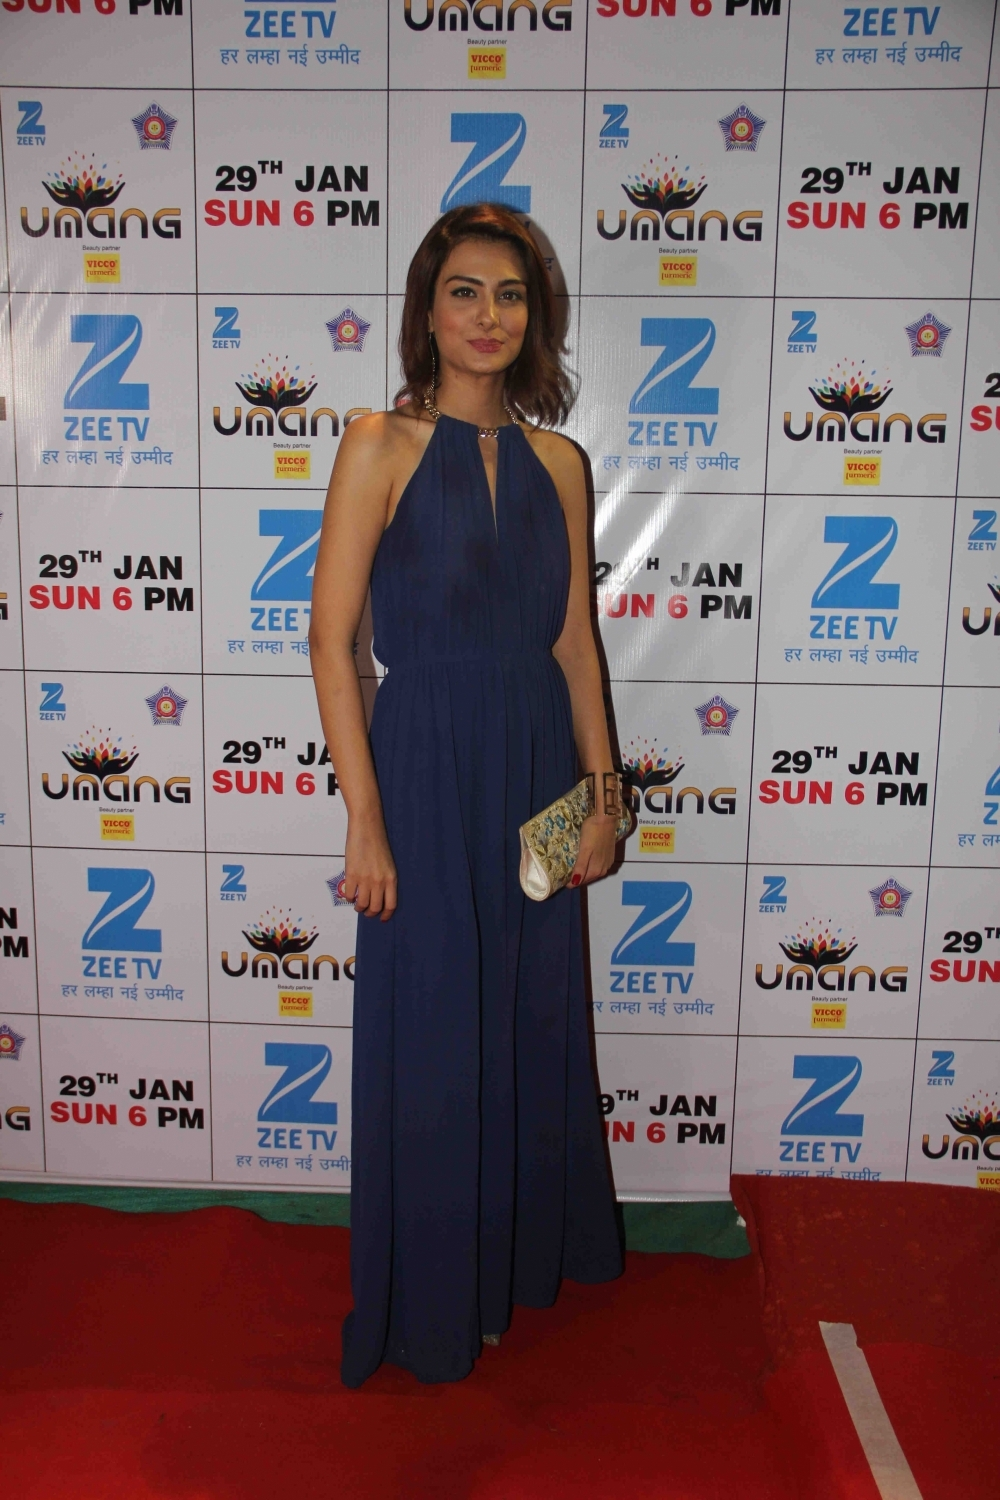 Mumbai: Actress Nazia Hussain during the Umang Mumbai Police Show 2017 in Mumbai on Jan 22, 2017. (Photo: IANS)